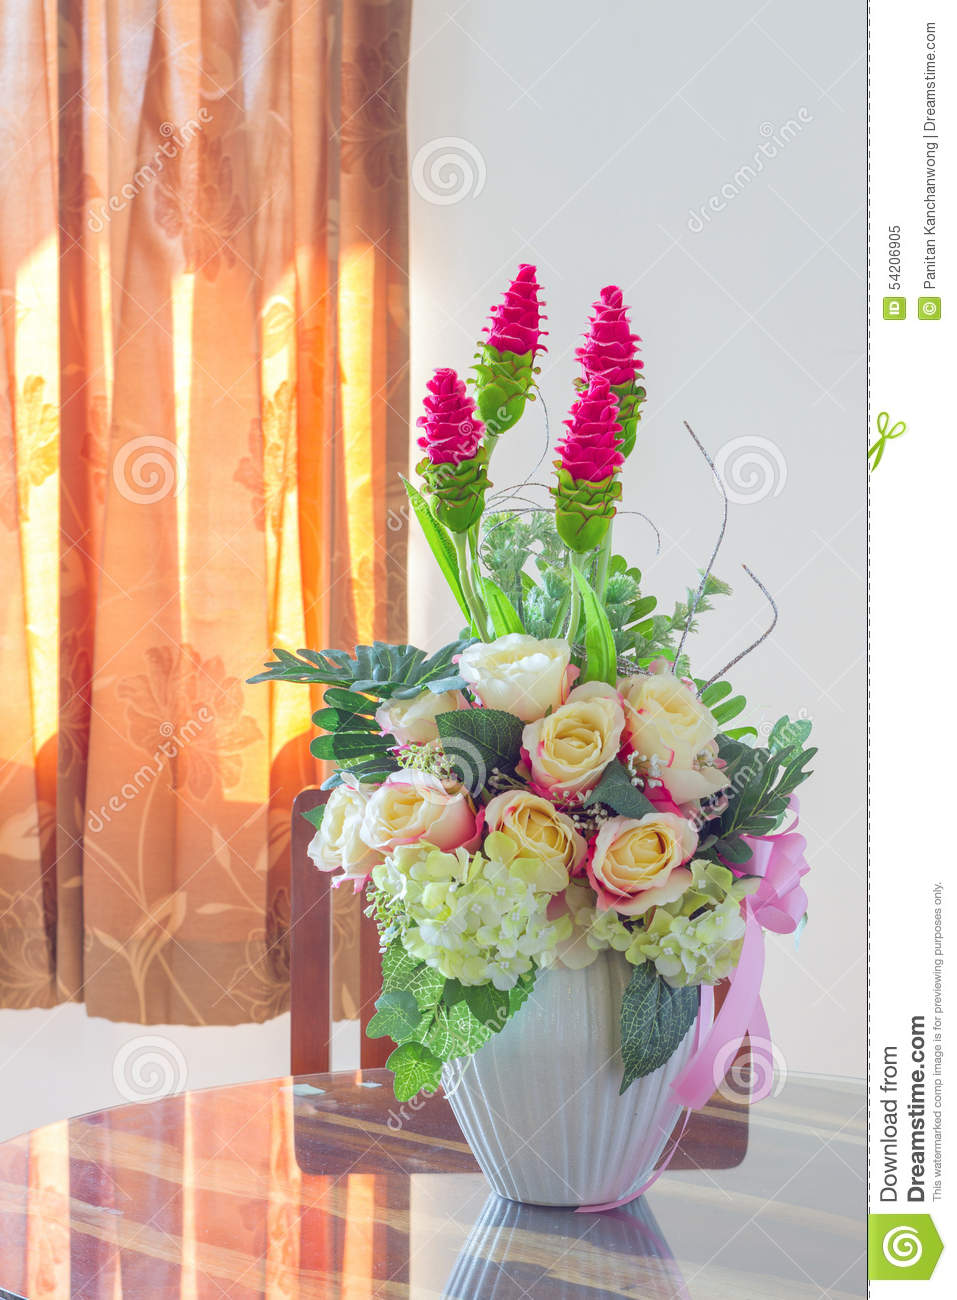 Beautiful fake flowers in white pot stock image image of beautiful fake flowers in white pot izmirmasajfo Choice Image